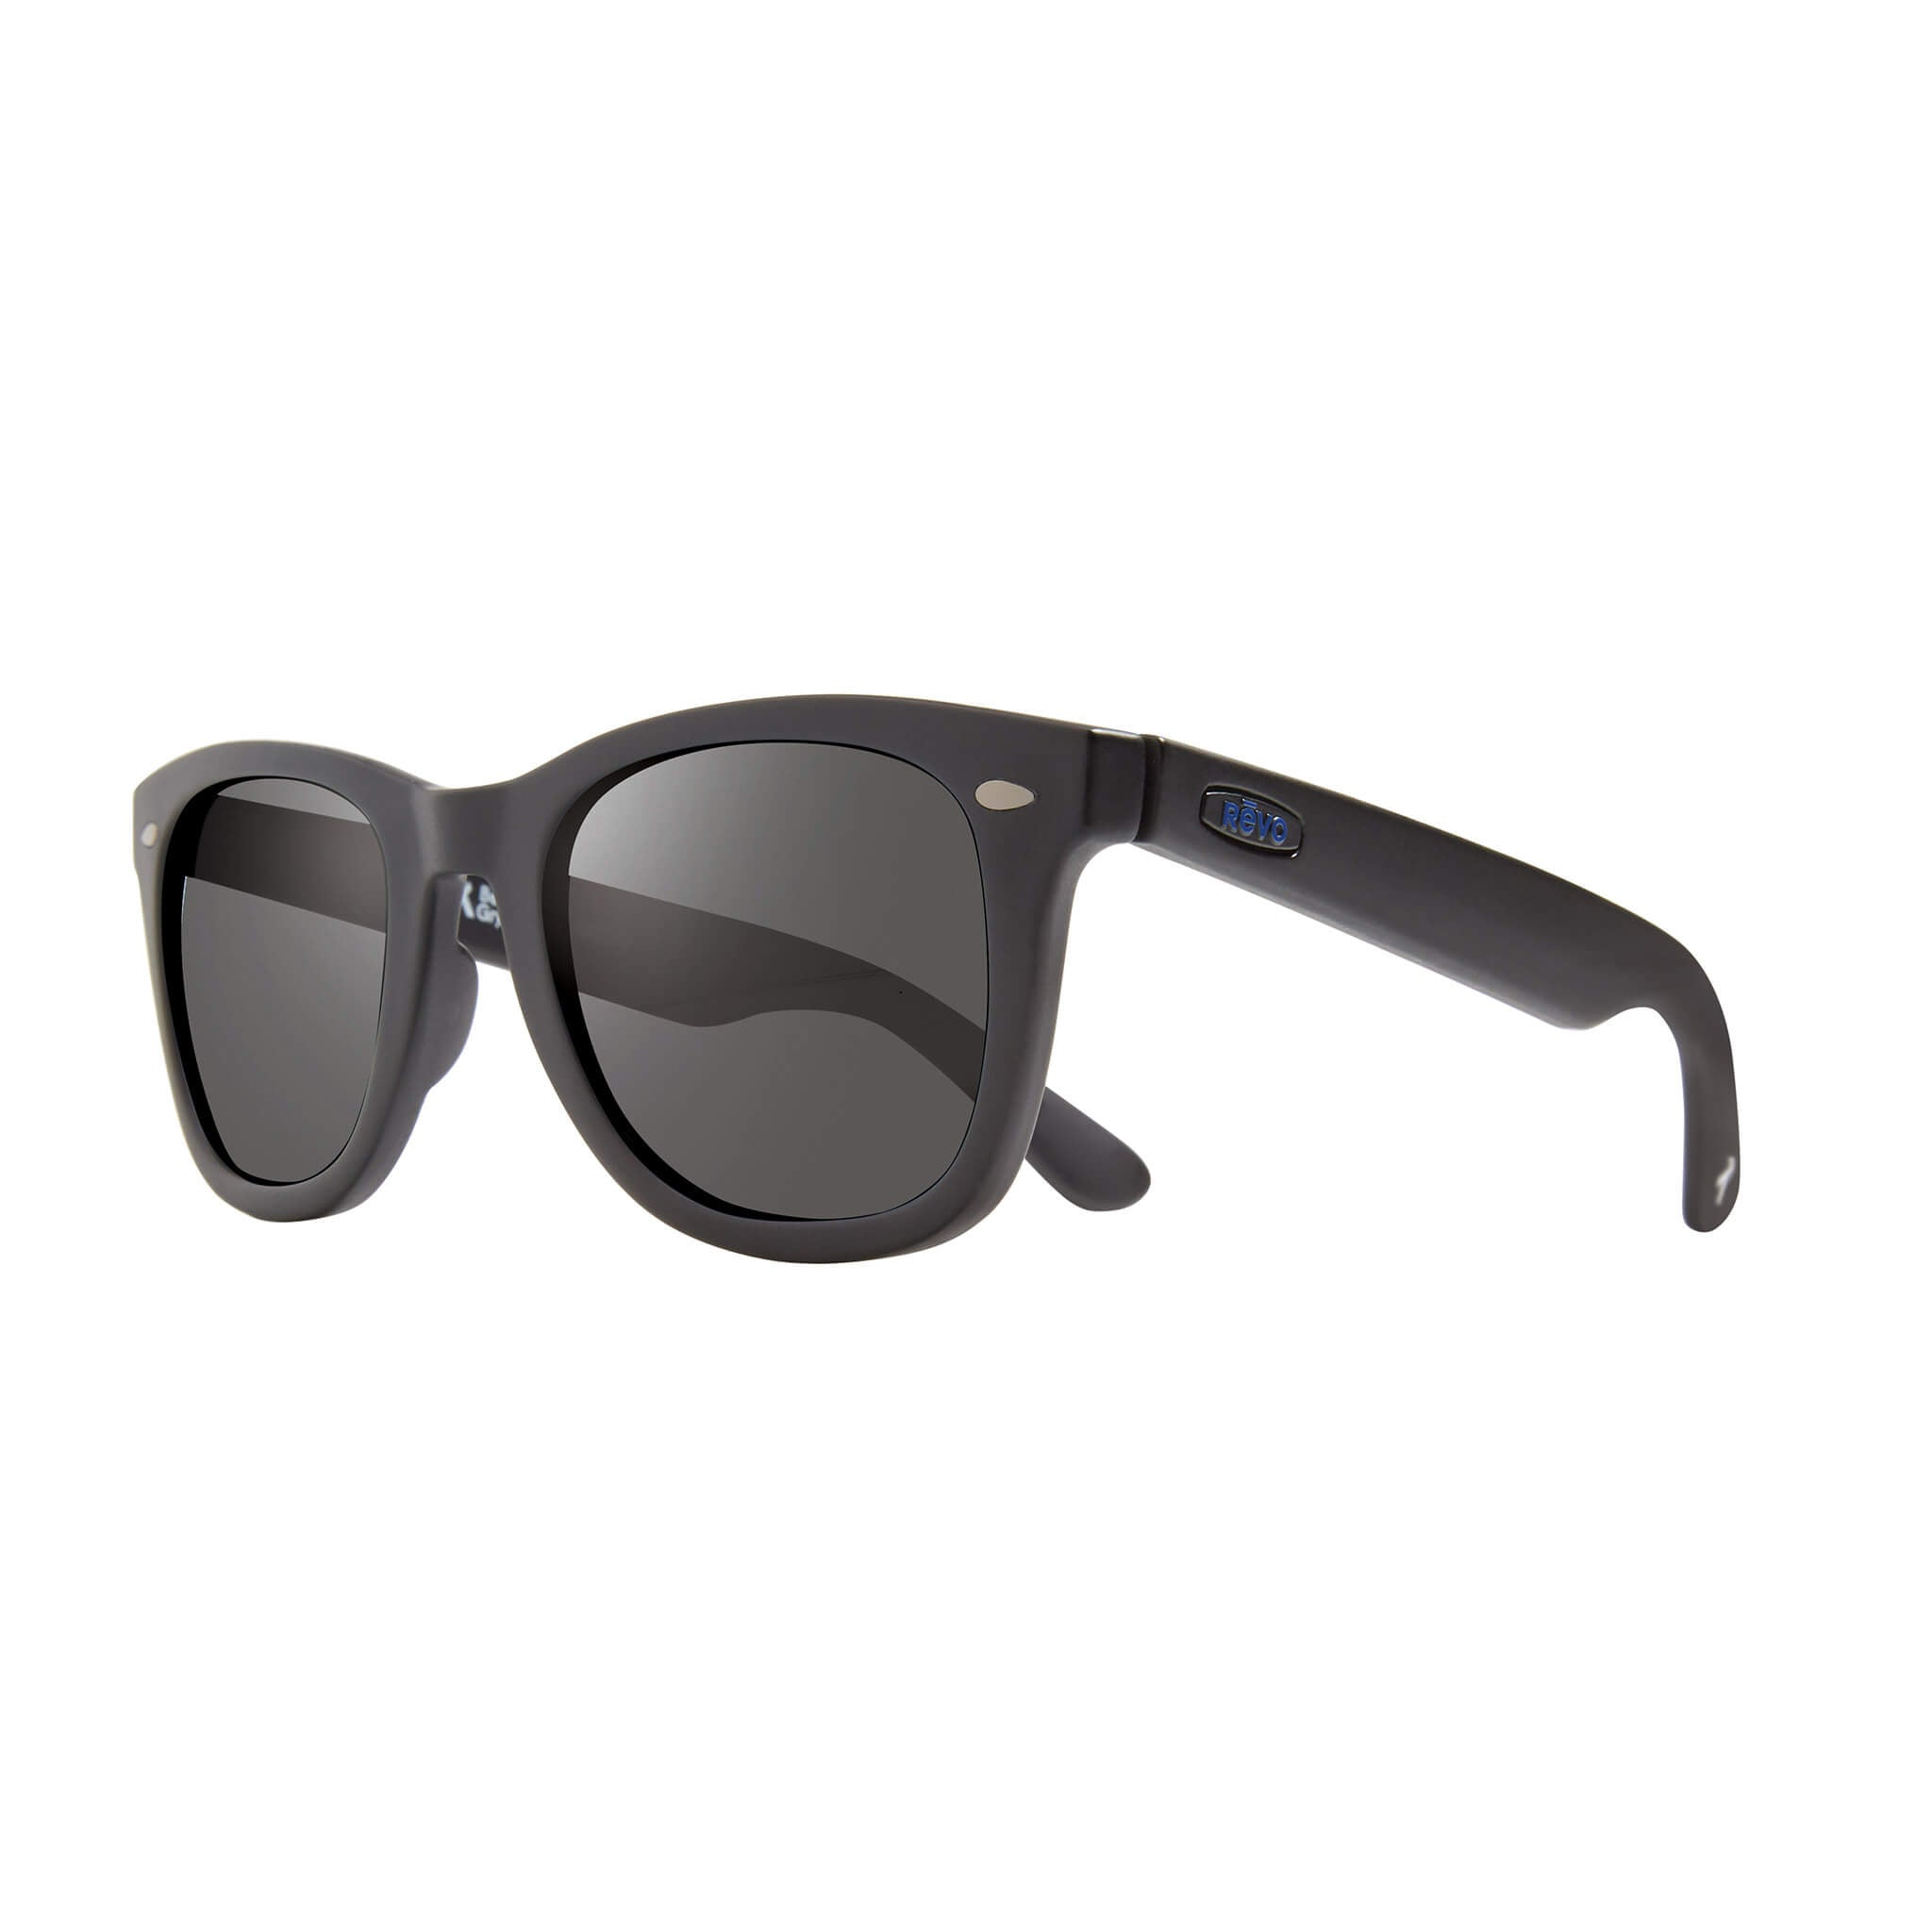 Forge Matte black + graphite lens:Side view of Bear Grylls Revo Black with Graphite lens sunglasses